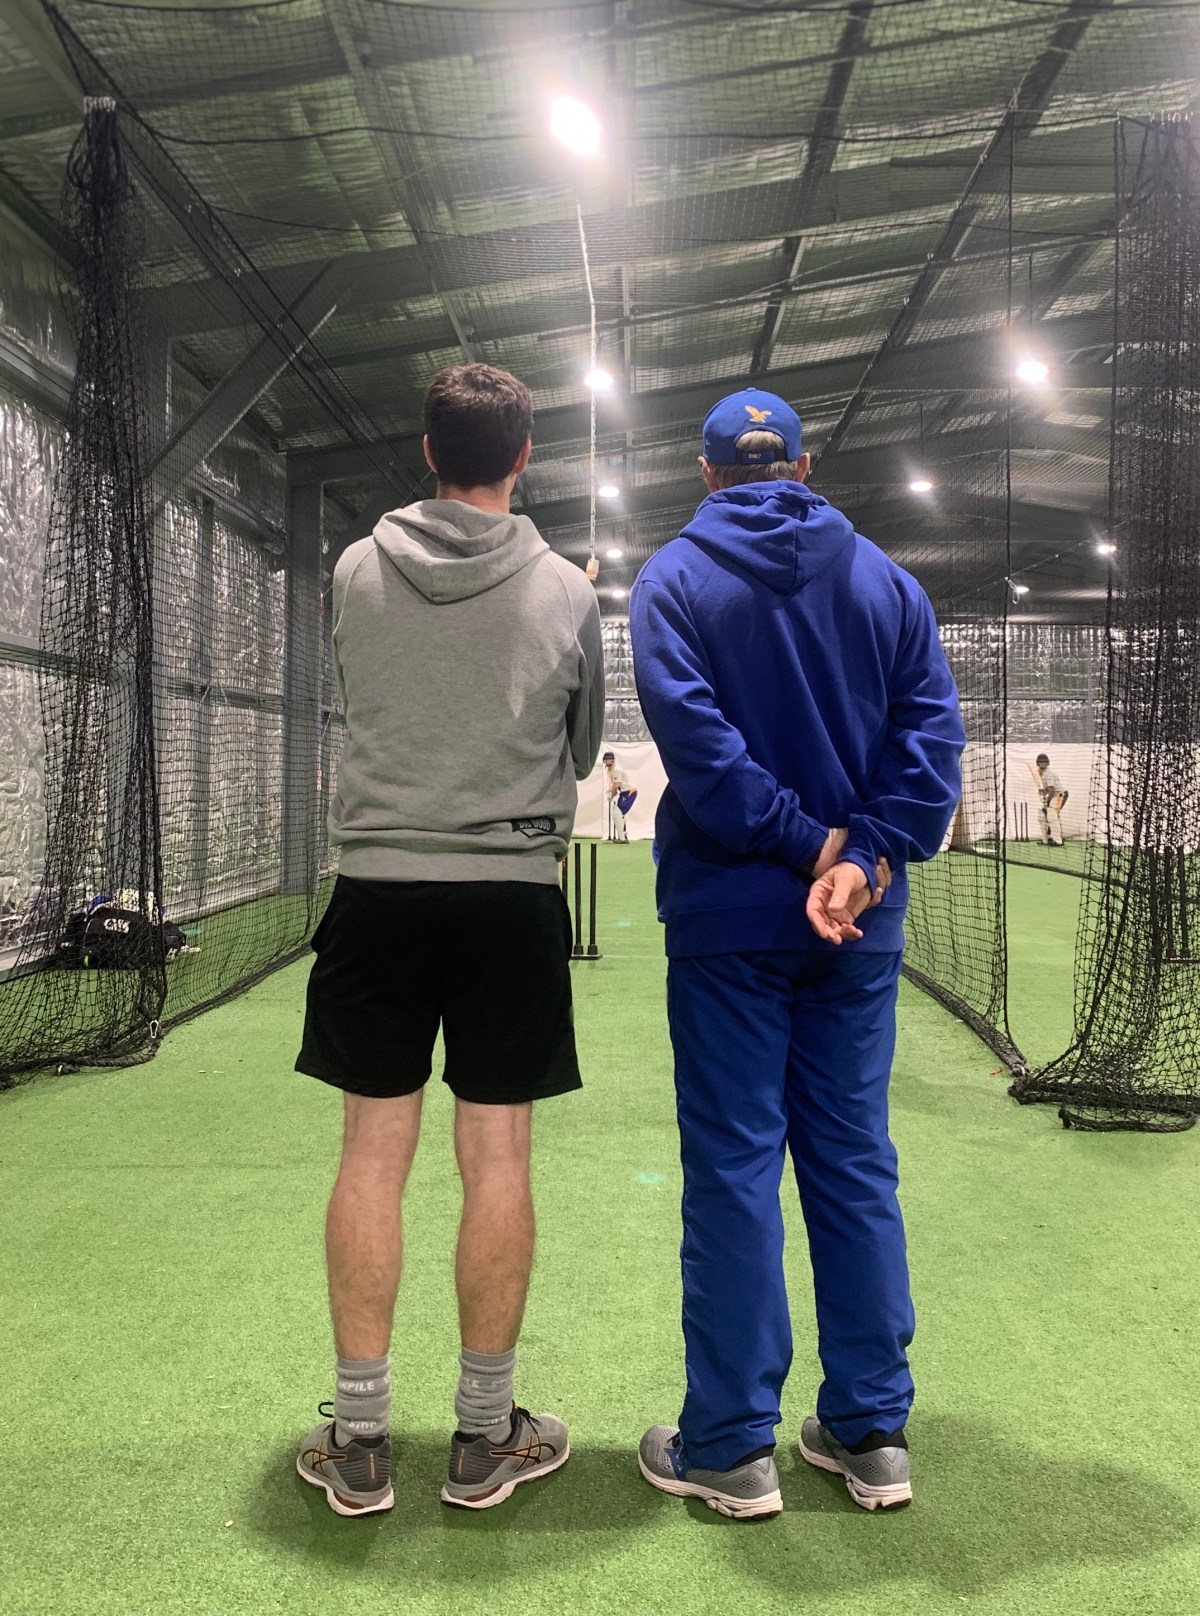 Gosnells Cricket Club head coach Wayne Andrews watches over a training net while talking and checking in with one of his players